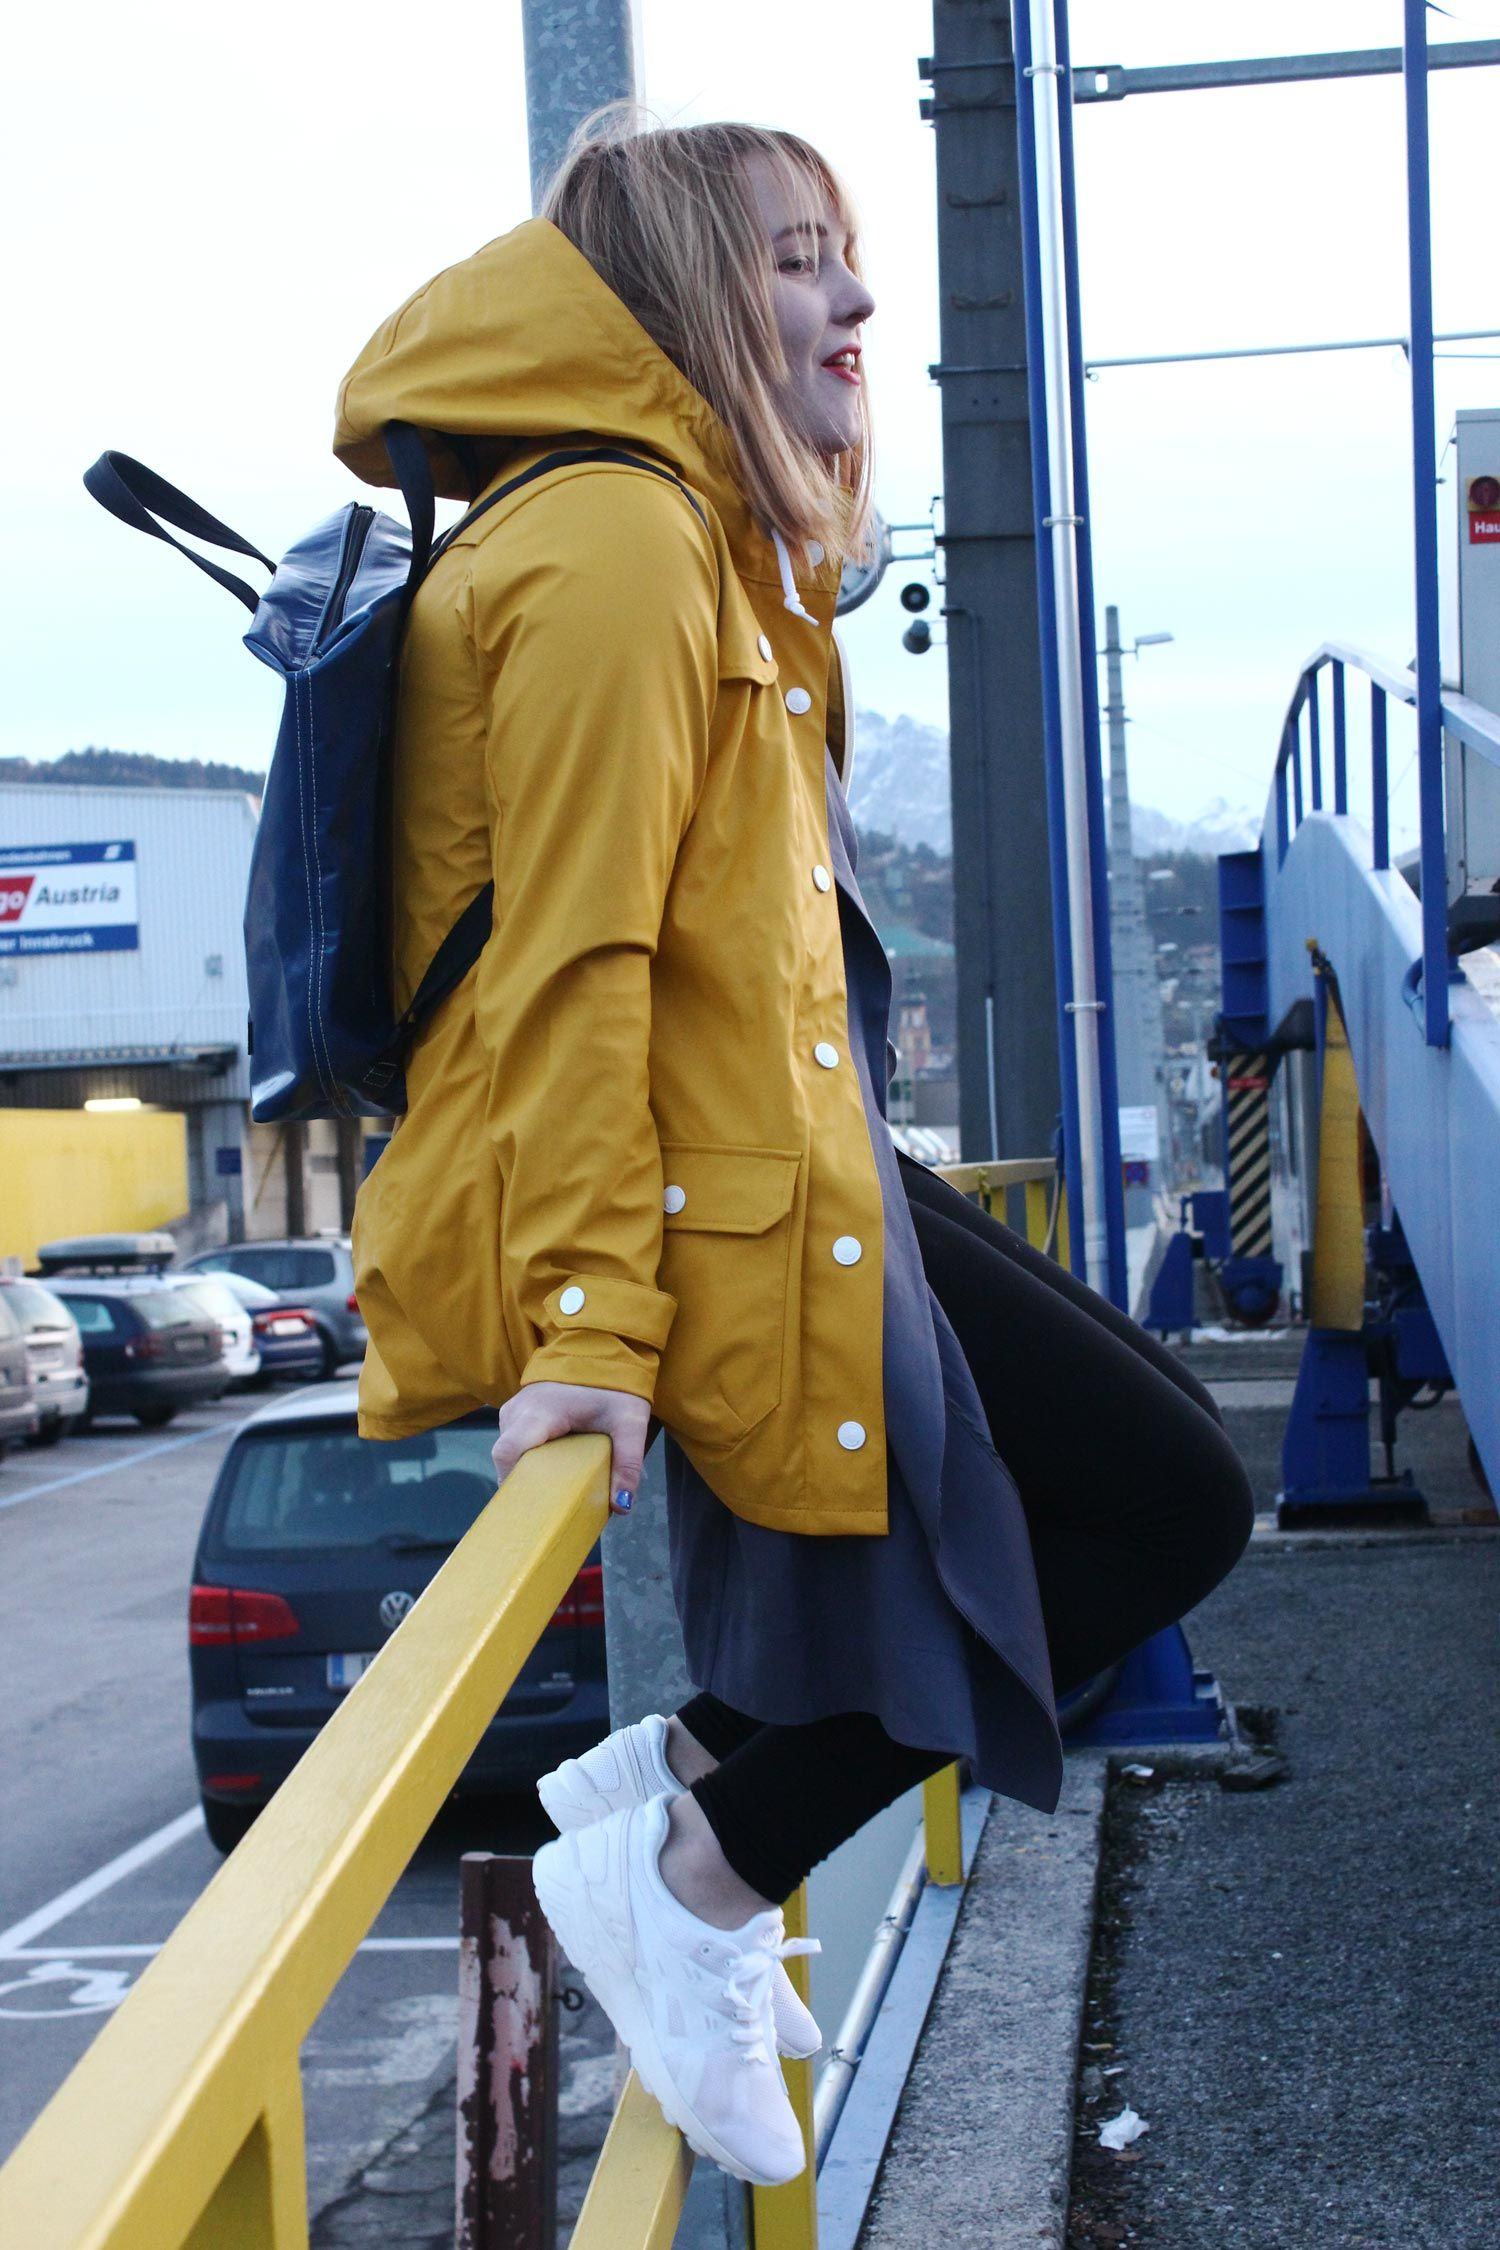 BagKitschick at Freitag Derbe Raincoat And wk8X0NnOP